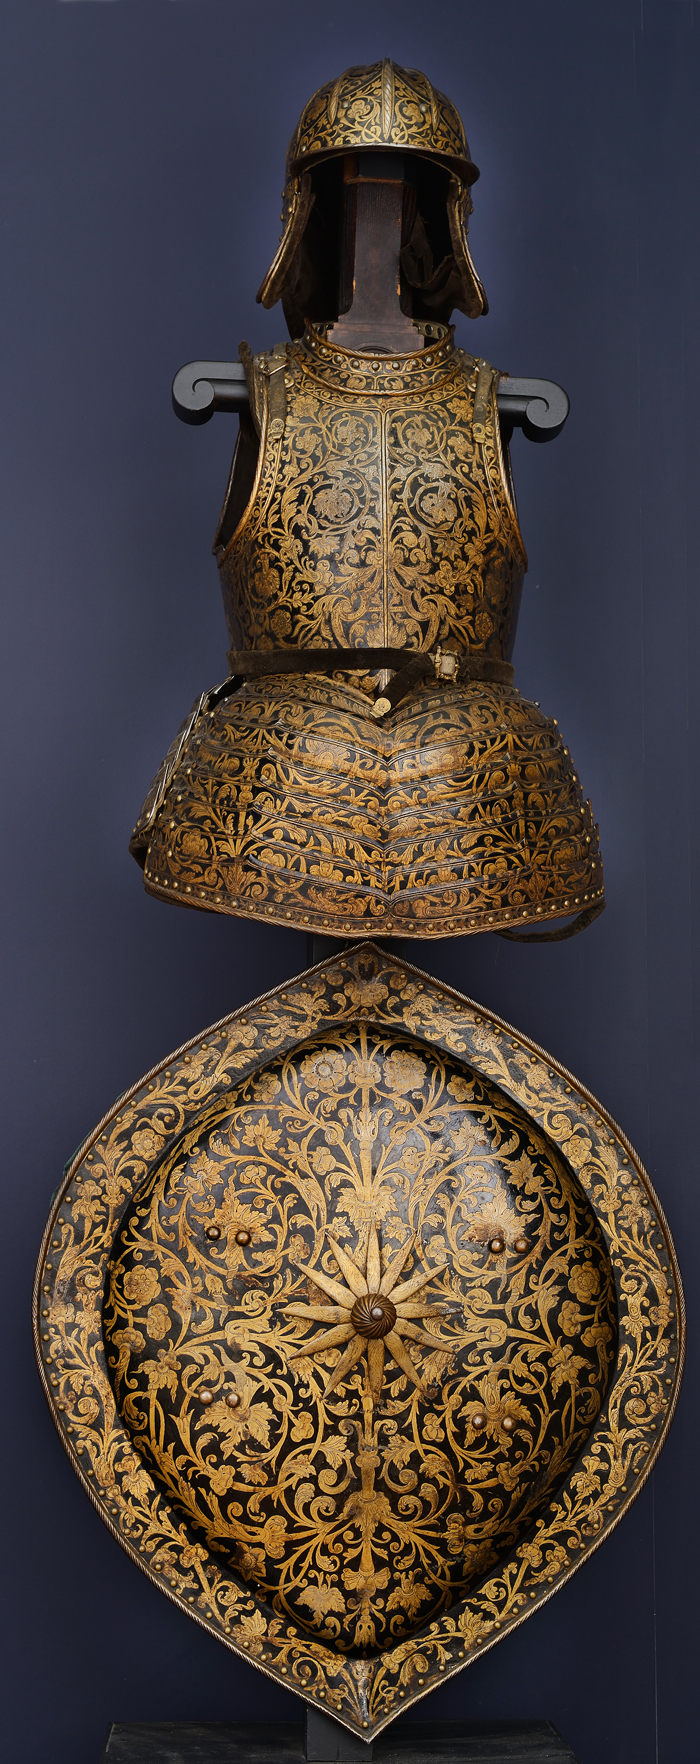 The emperor's armor, helmet and shield (photo courtesy of the National Palace Museum of Korea)